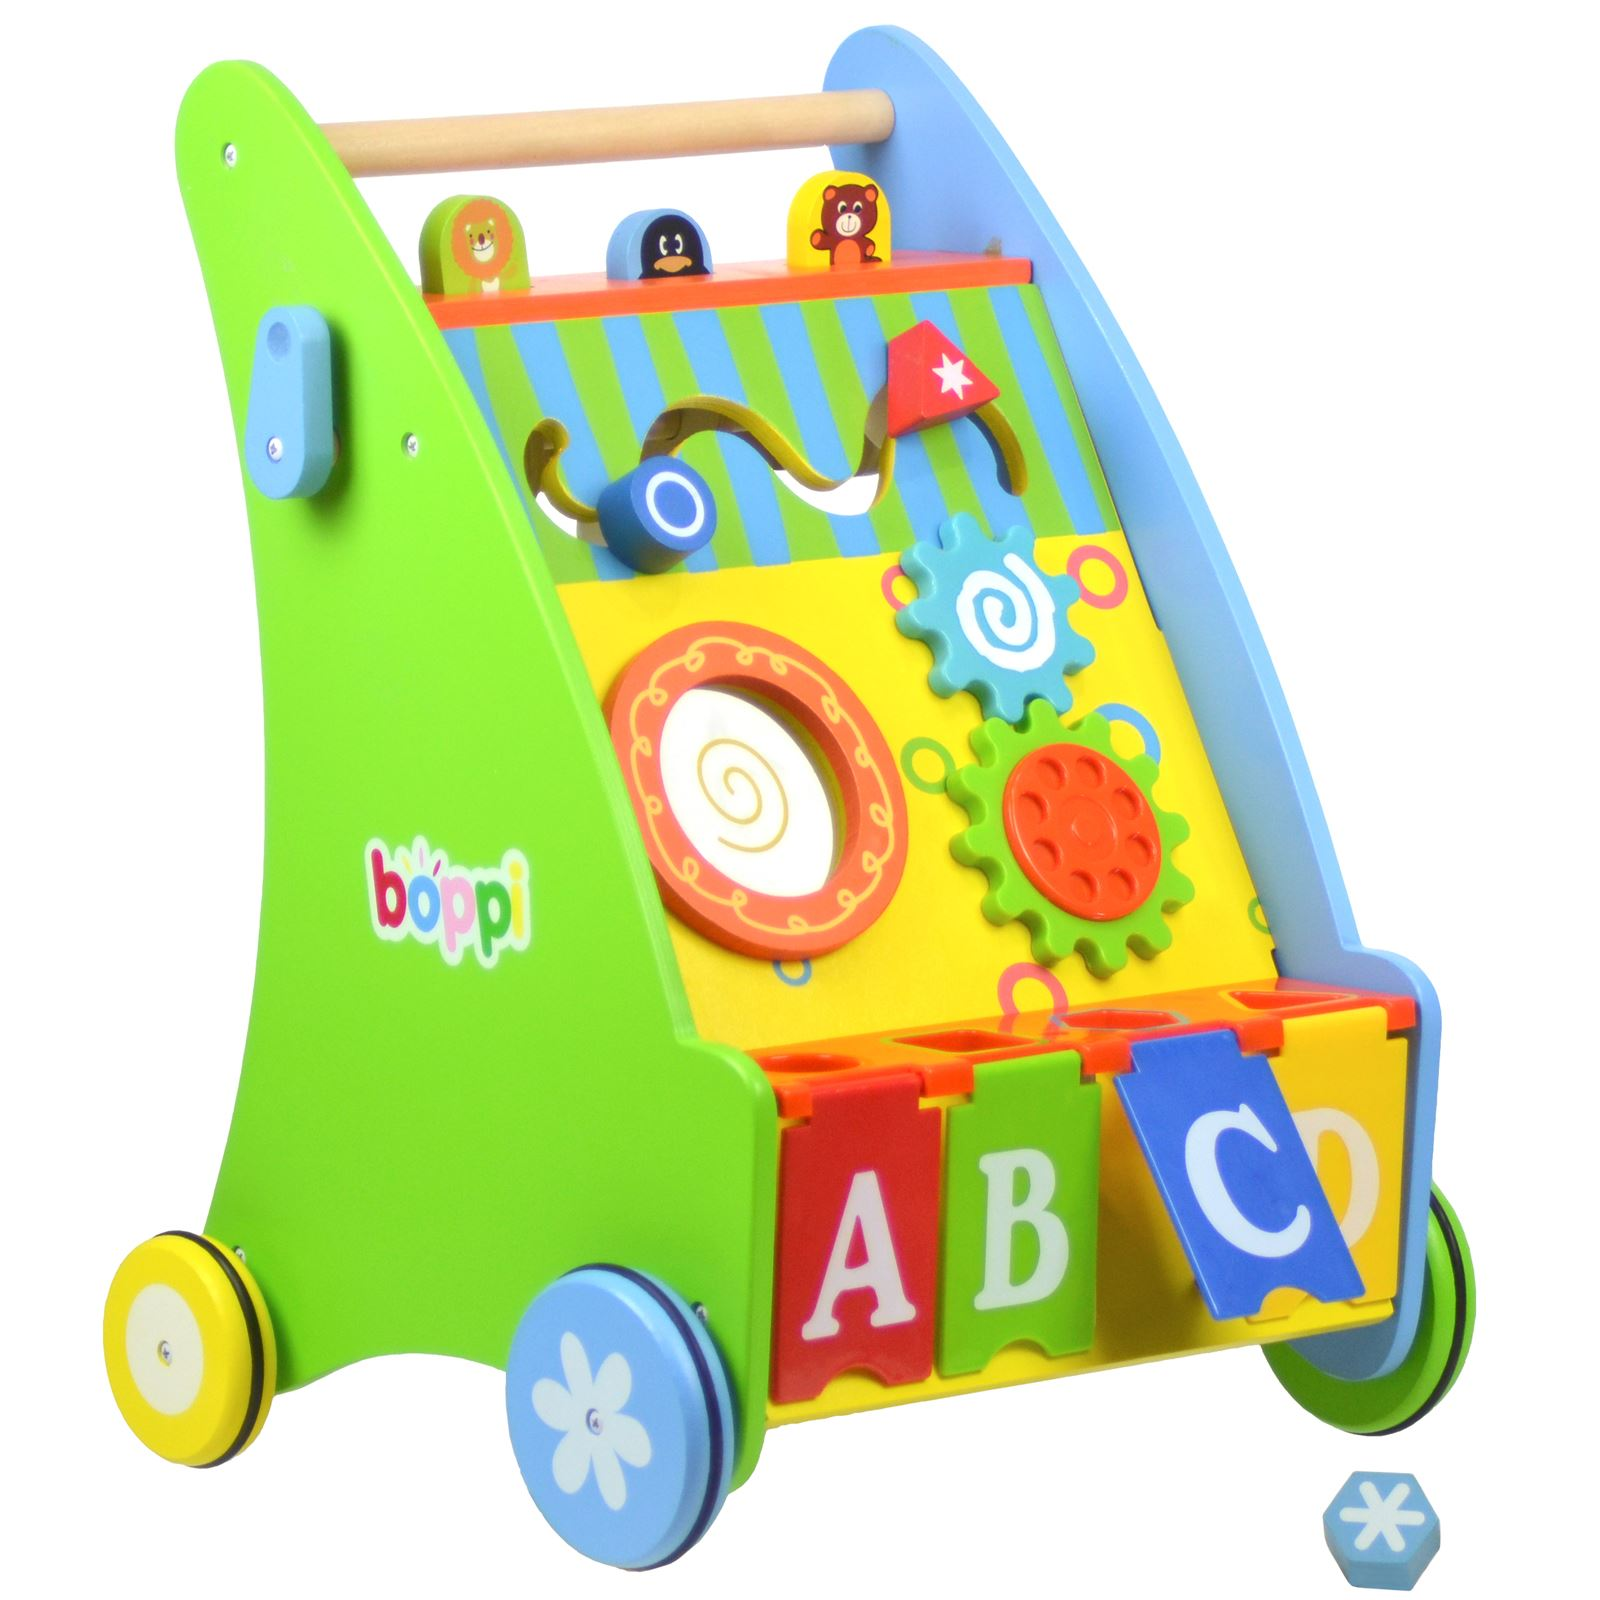 Boppi - Wooden Push Along Activity Activity Activity Walker for Babies & Toddlers - 9-18 Months e0938e